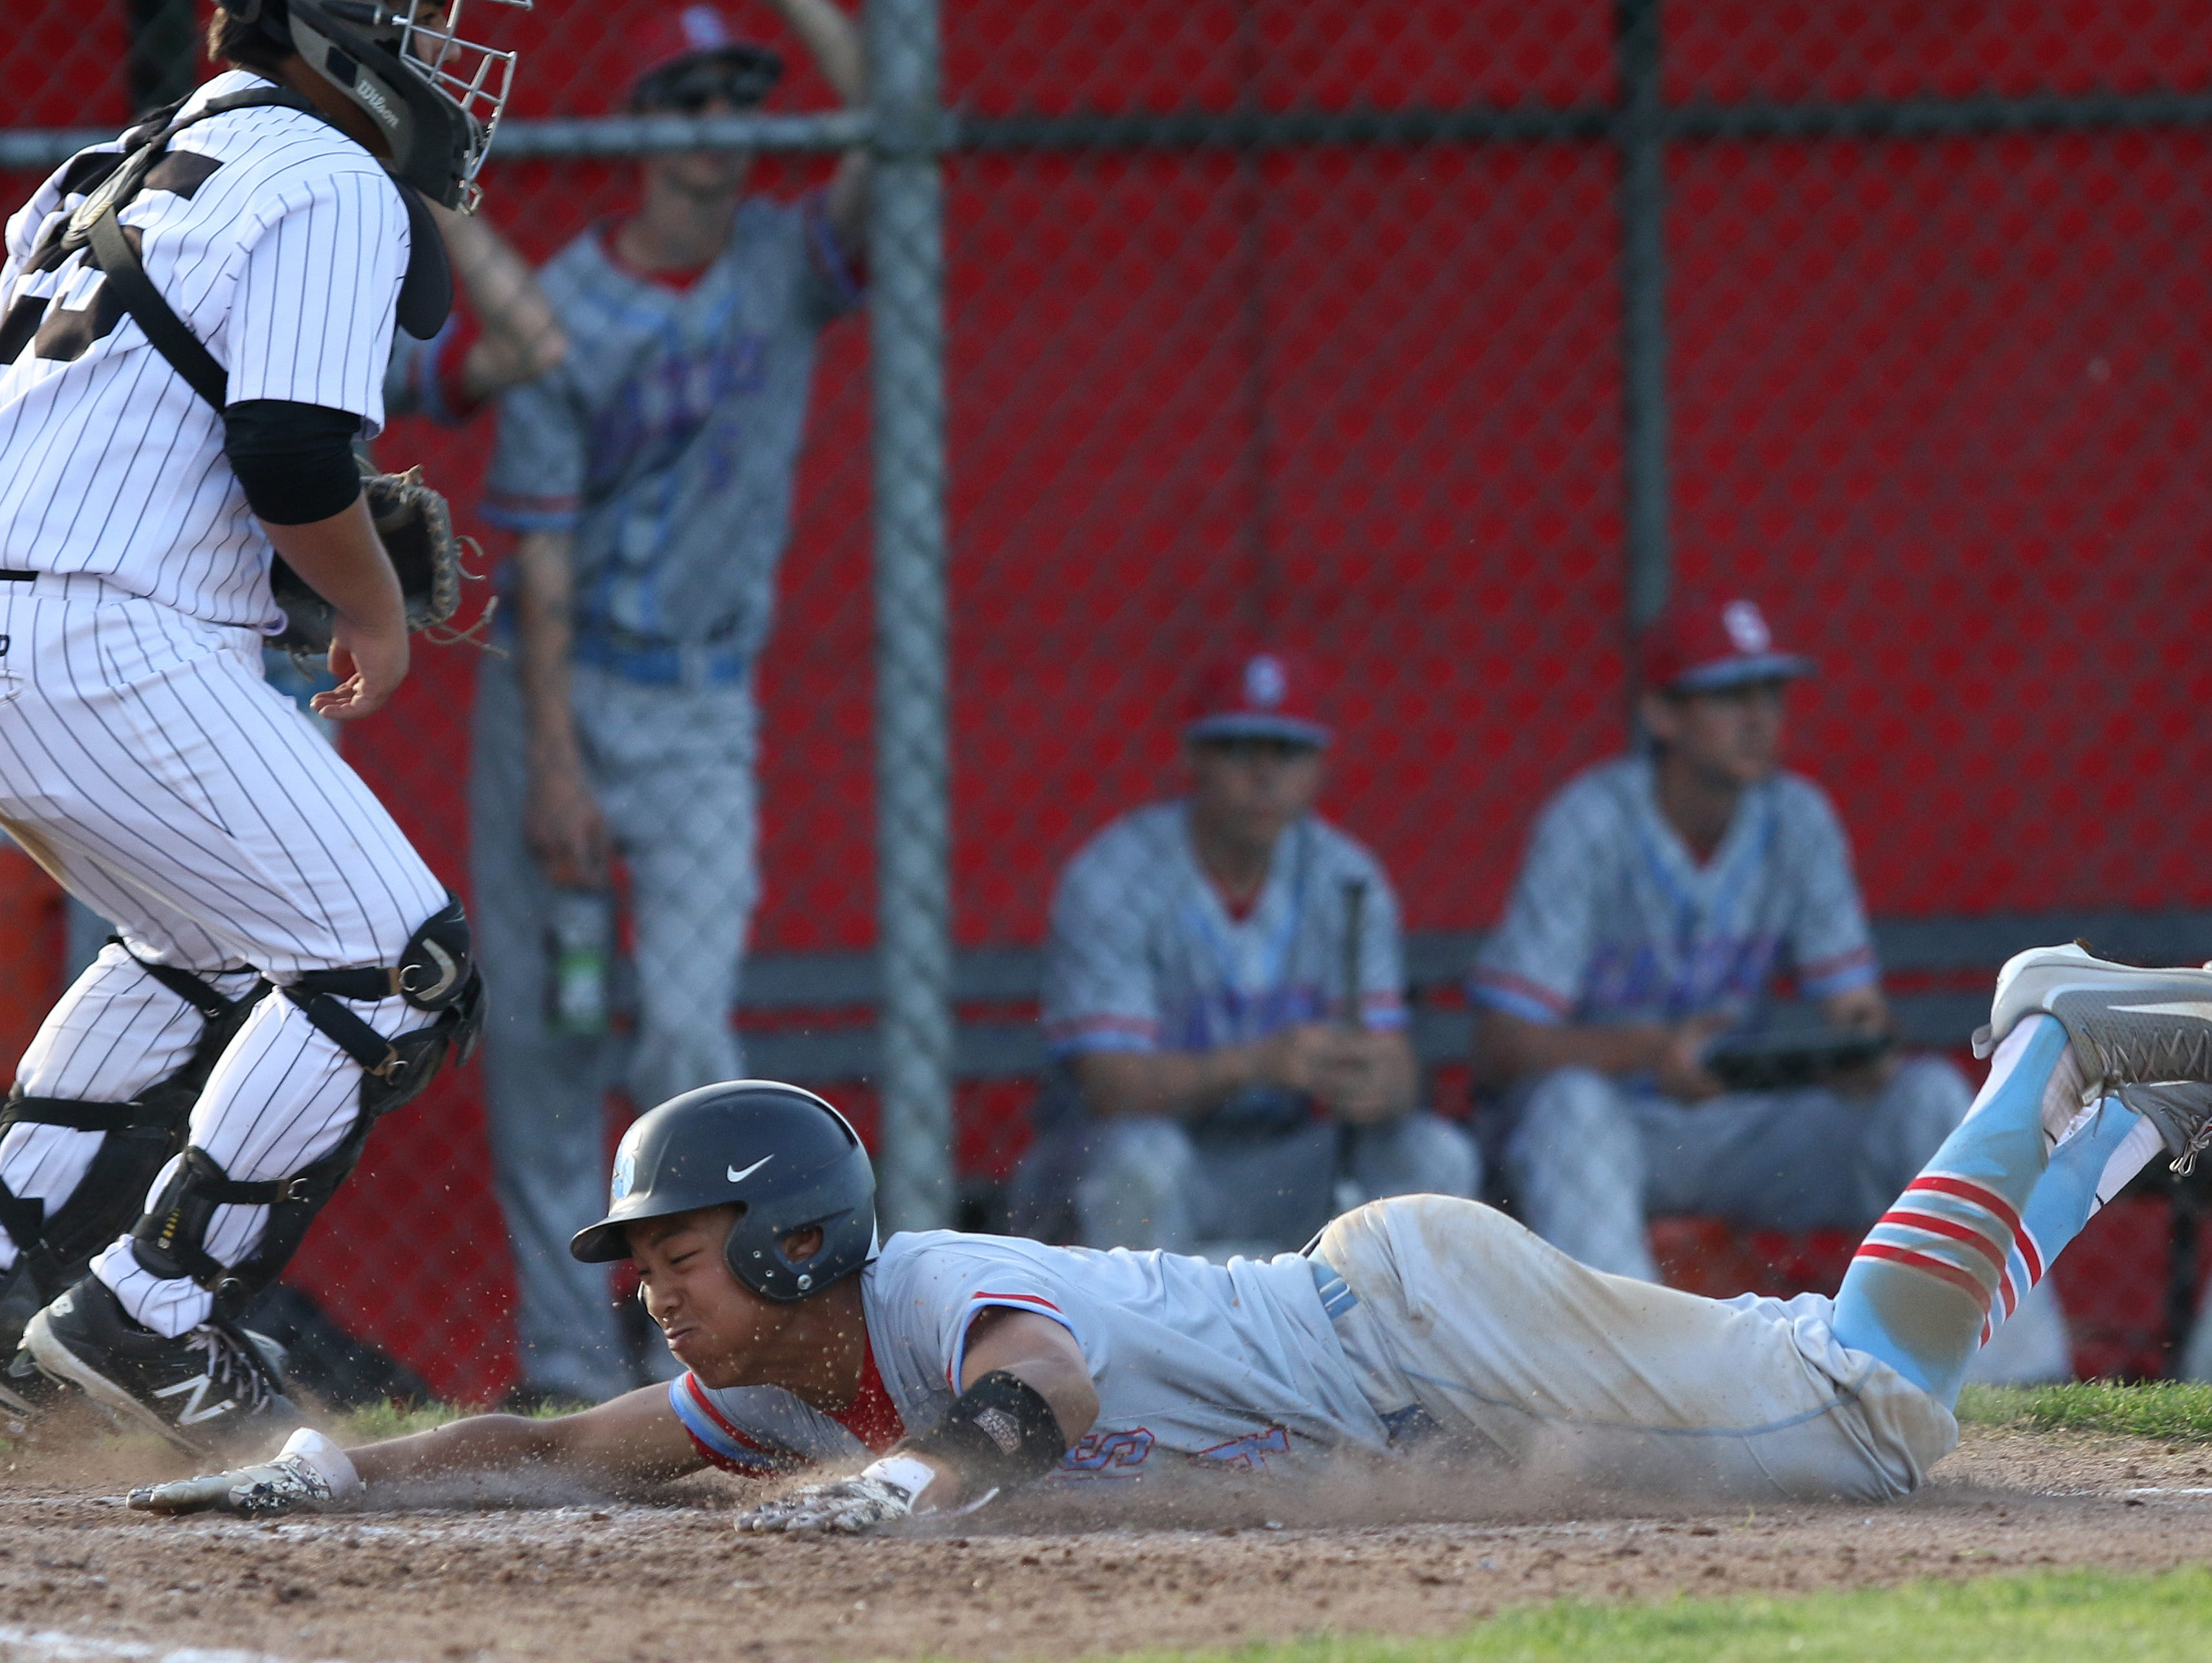 South Salem's Tony Phong slides home as the Saxons defeat North Salem 8-1 on Friday, April 8, 2016, during a Greater Valley Conference game.